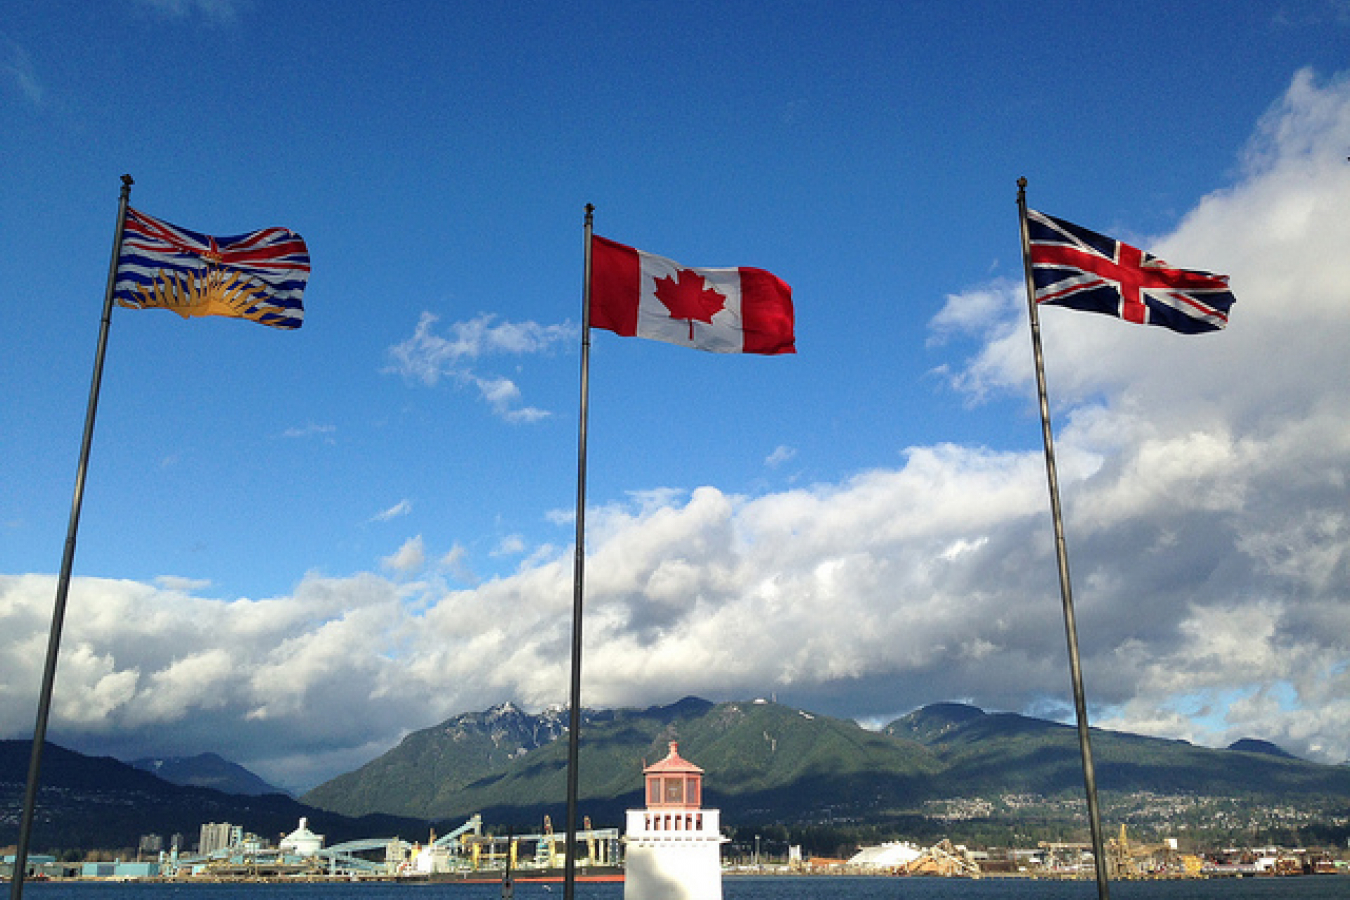 The 3 Flags of British Columbia